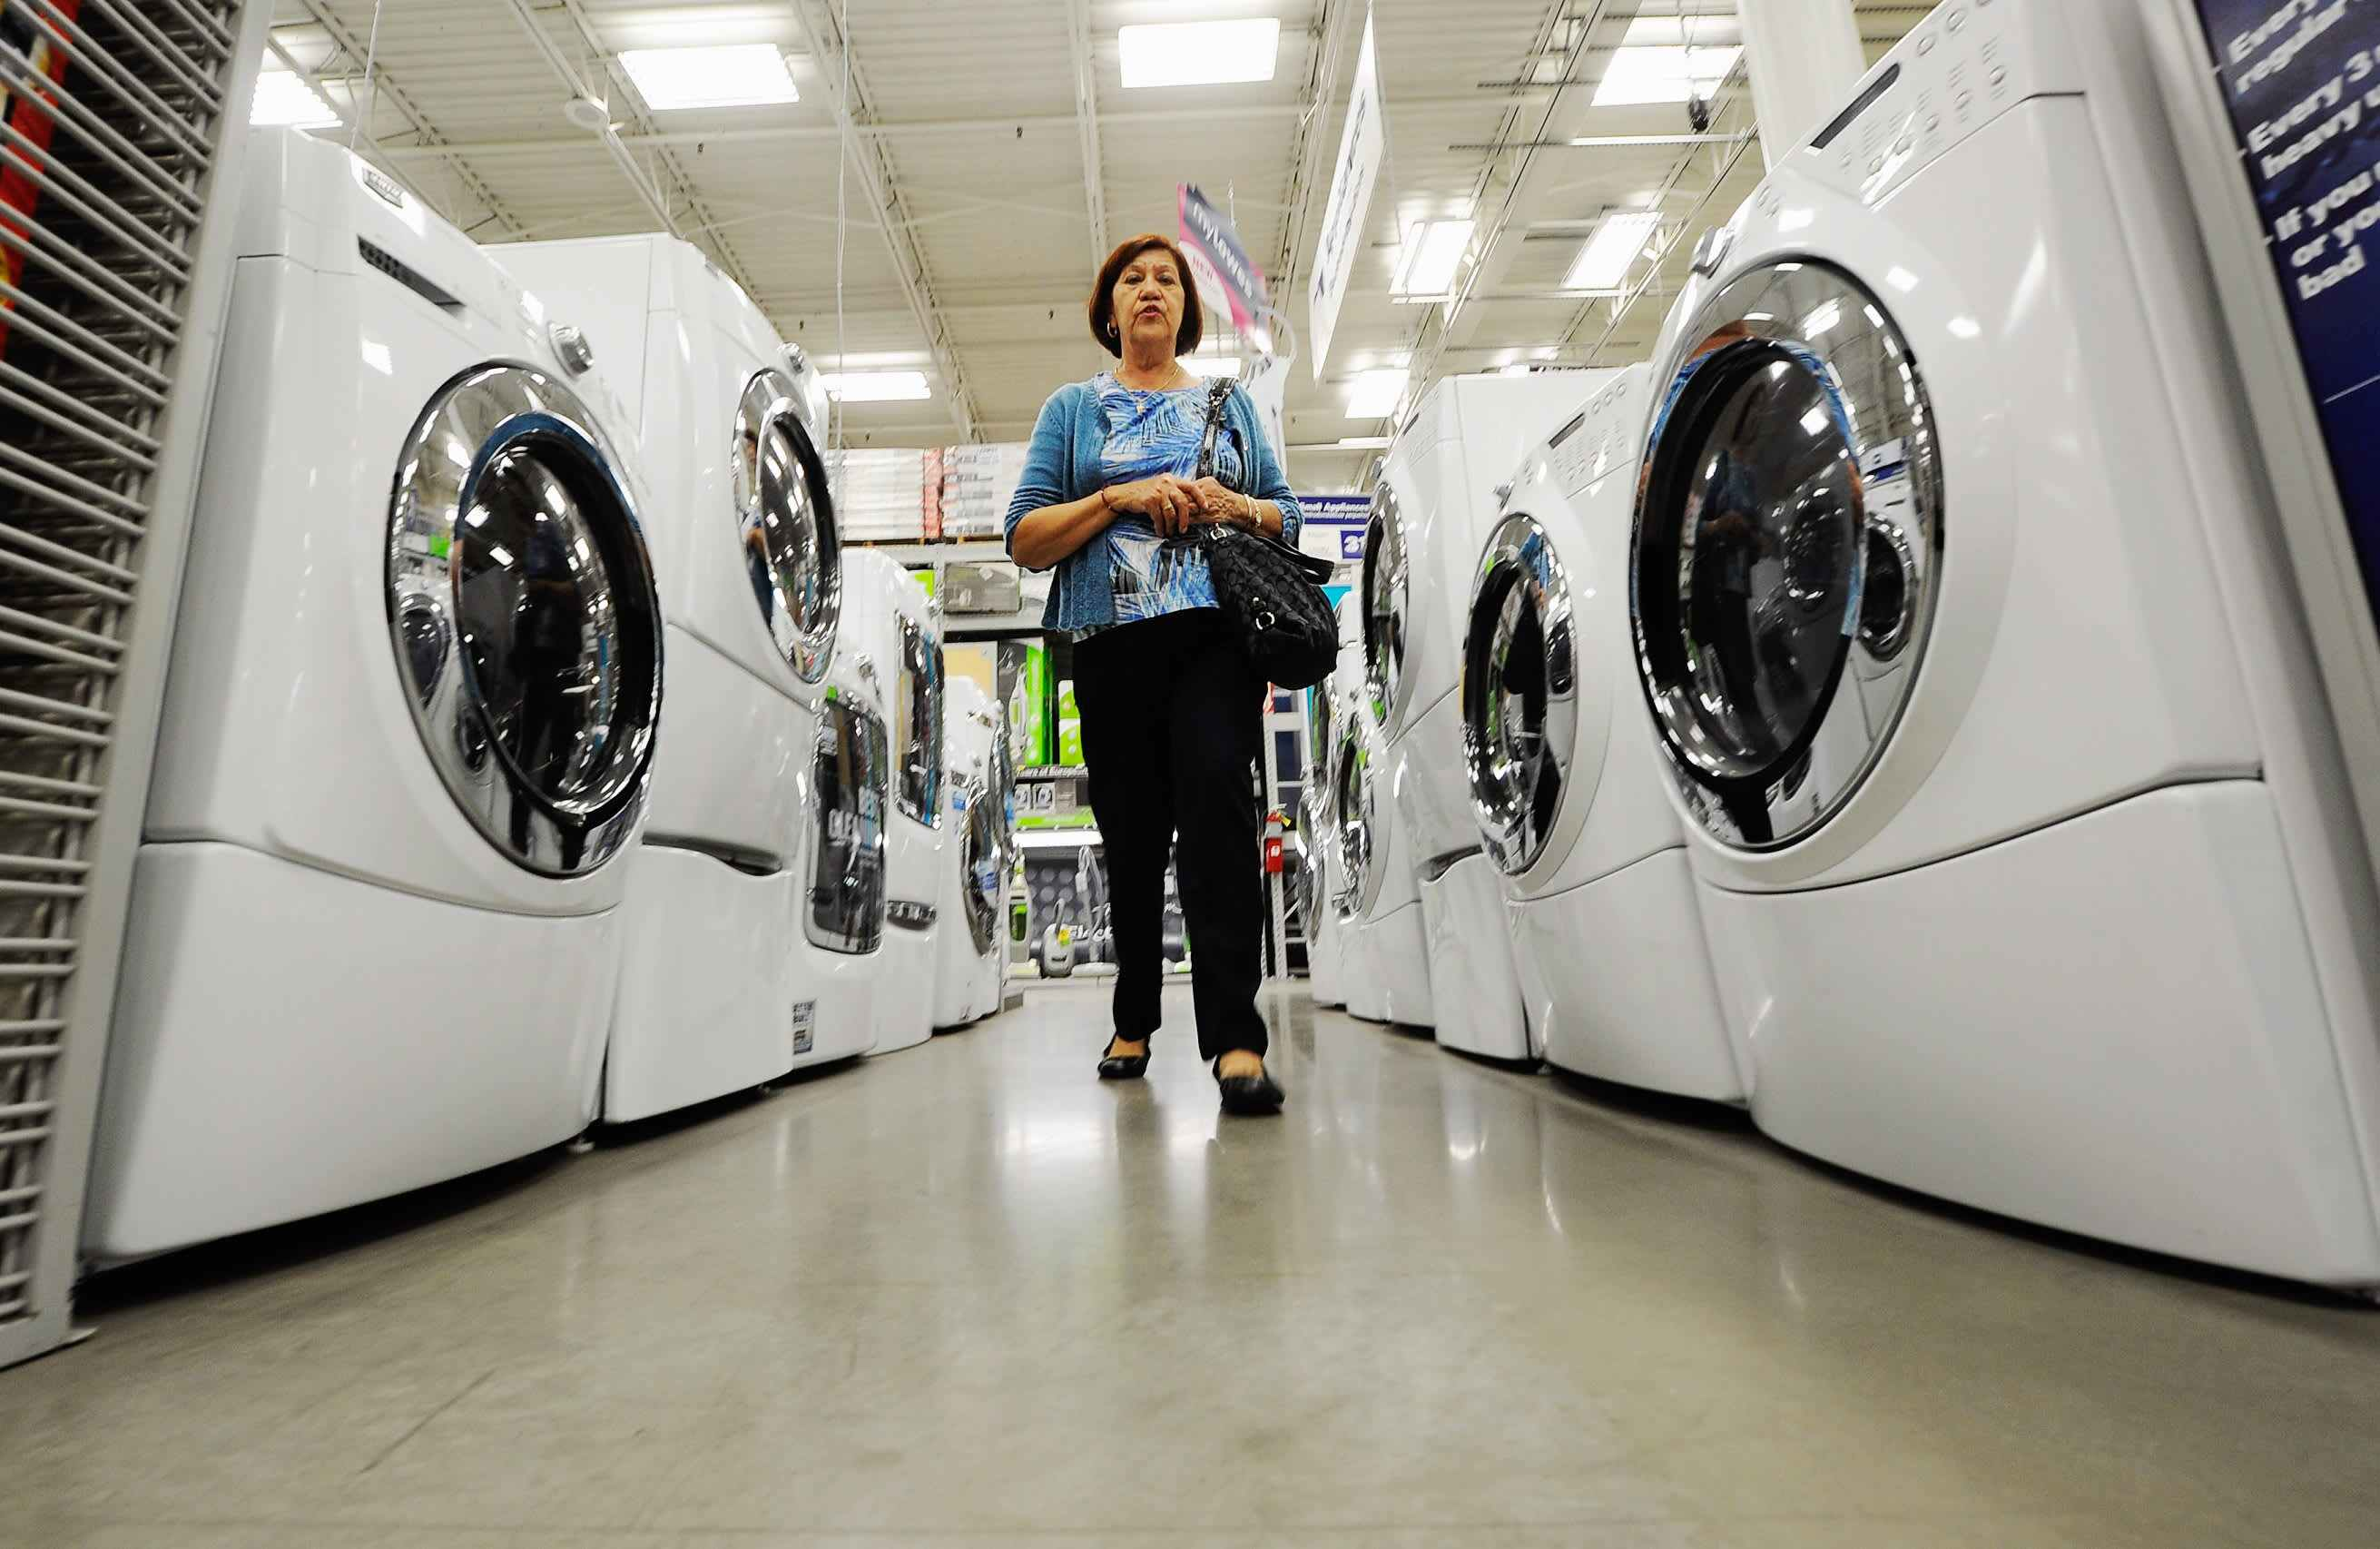 Lowe's CEO says productivity will ascend as retailer speeds up a refrigerator, Washing Machine